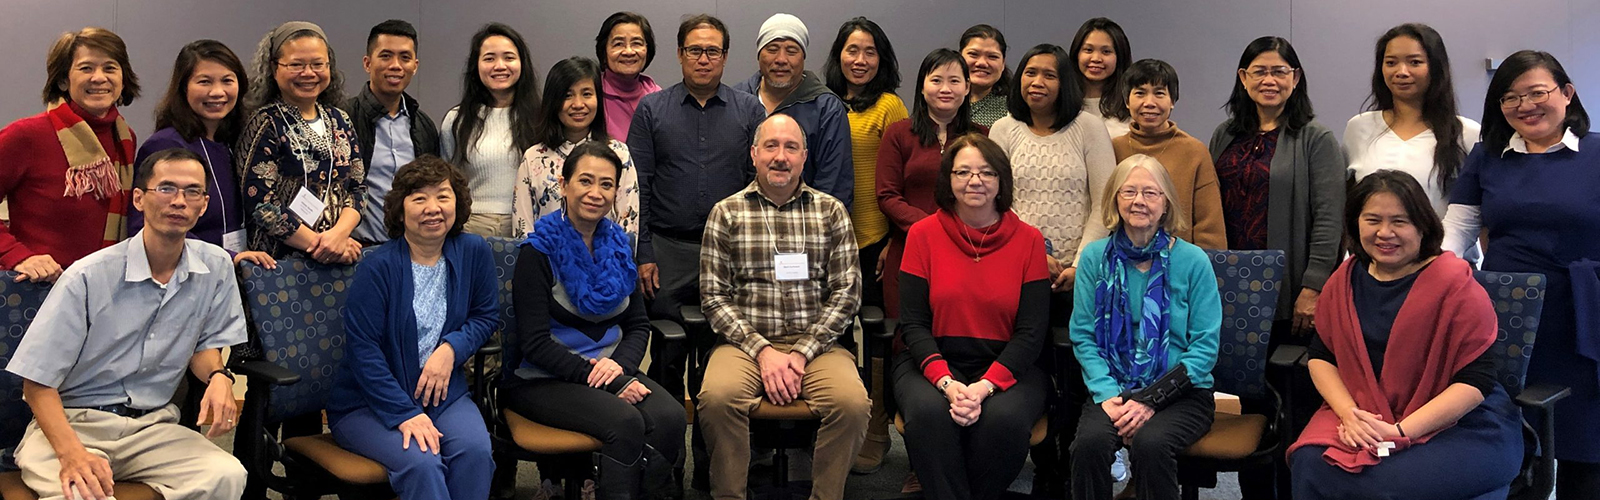 A group photo from 2019 December workshop